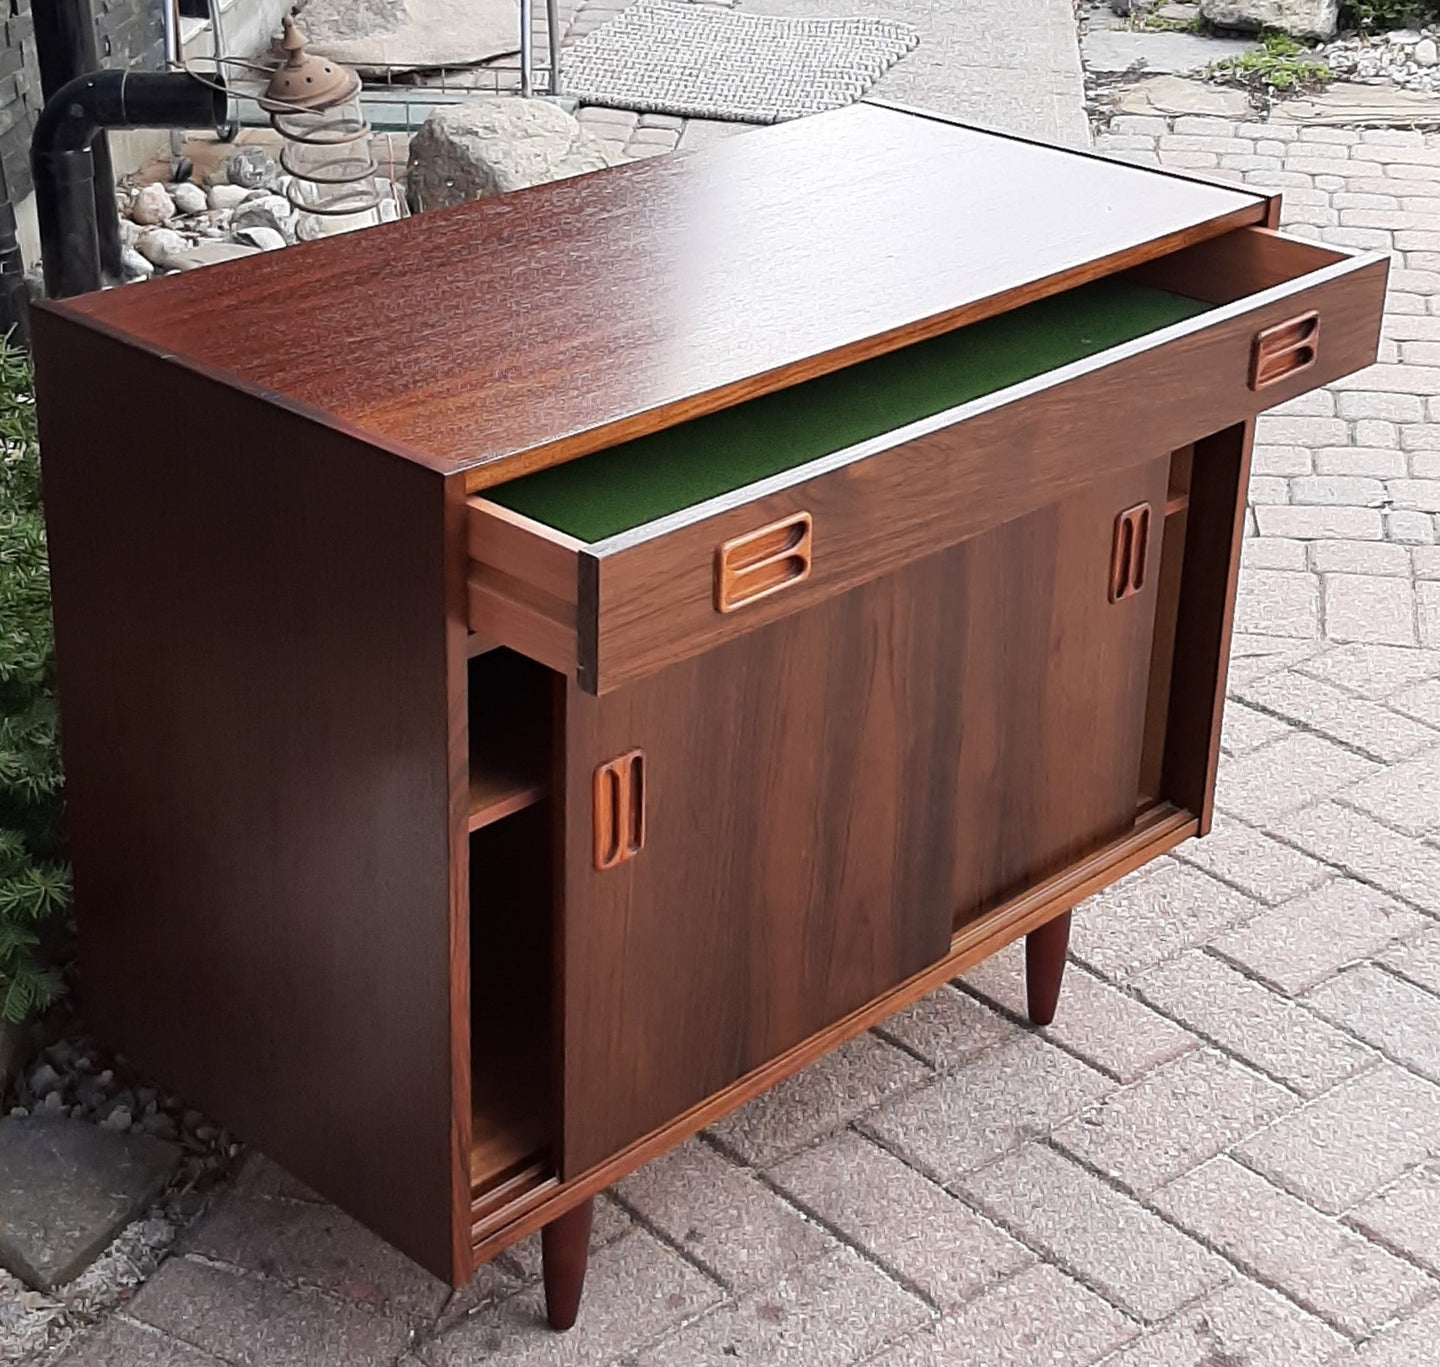 RESTORED Danish MCM Rosewood Cabinet with sliding doors & drawer, compact 34